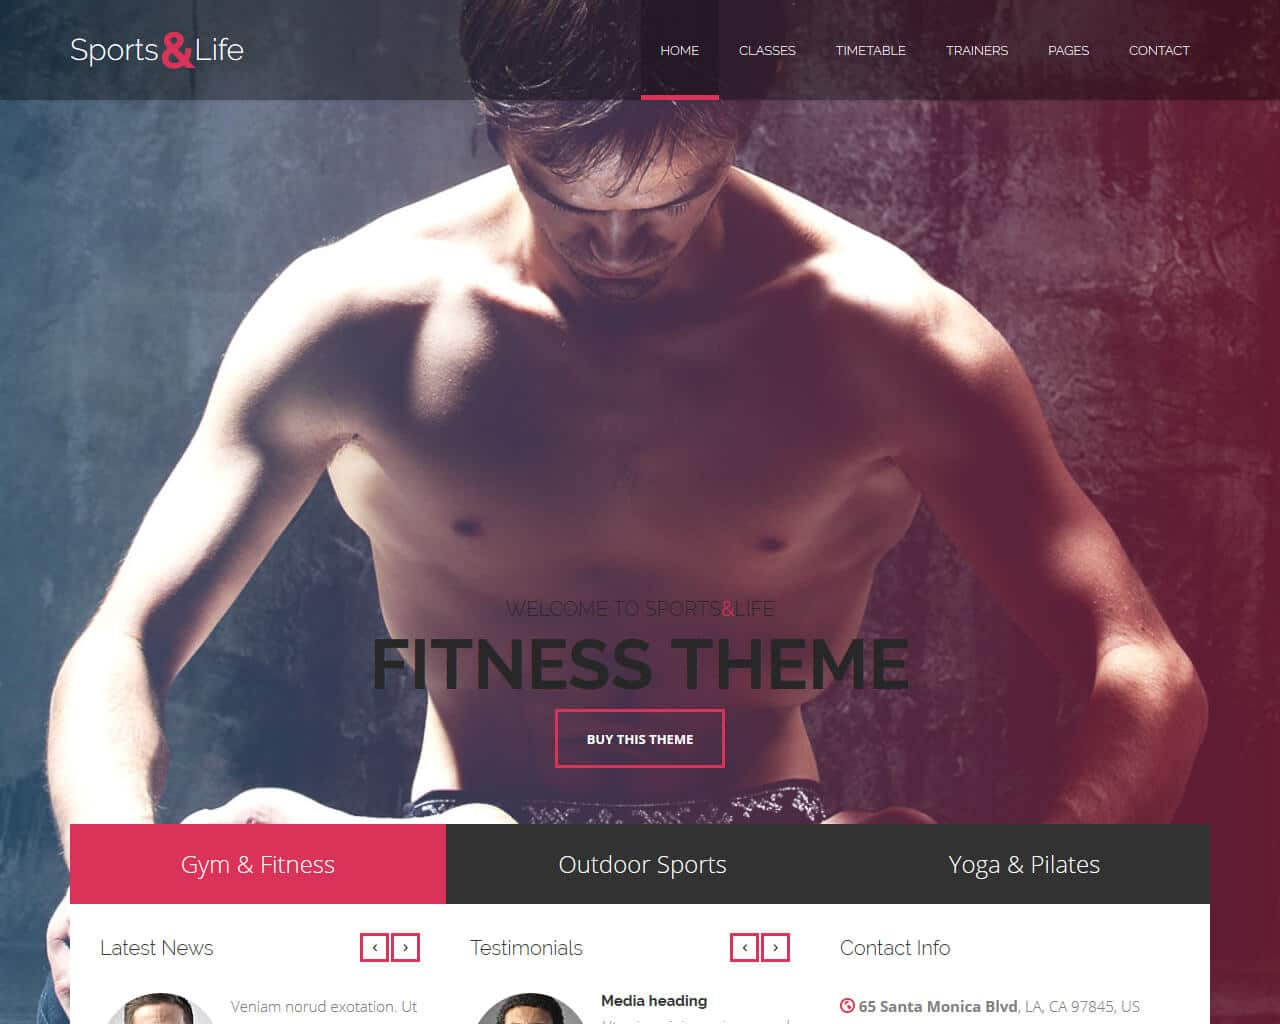 Sports&Life Website Template